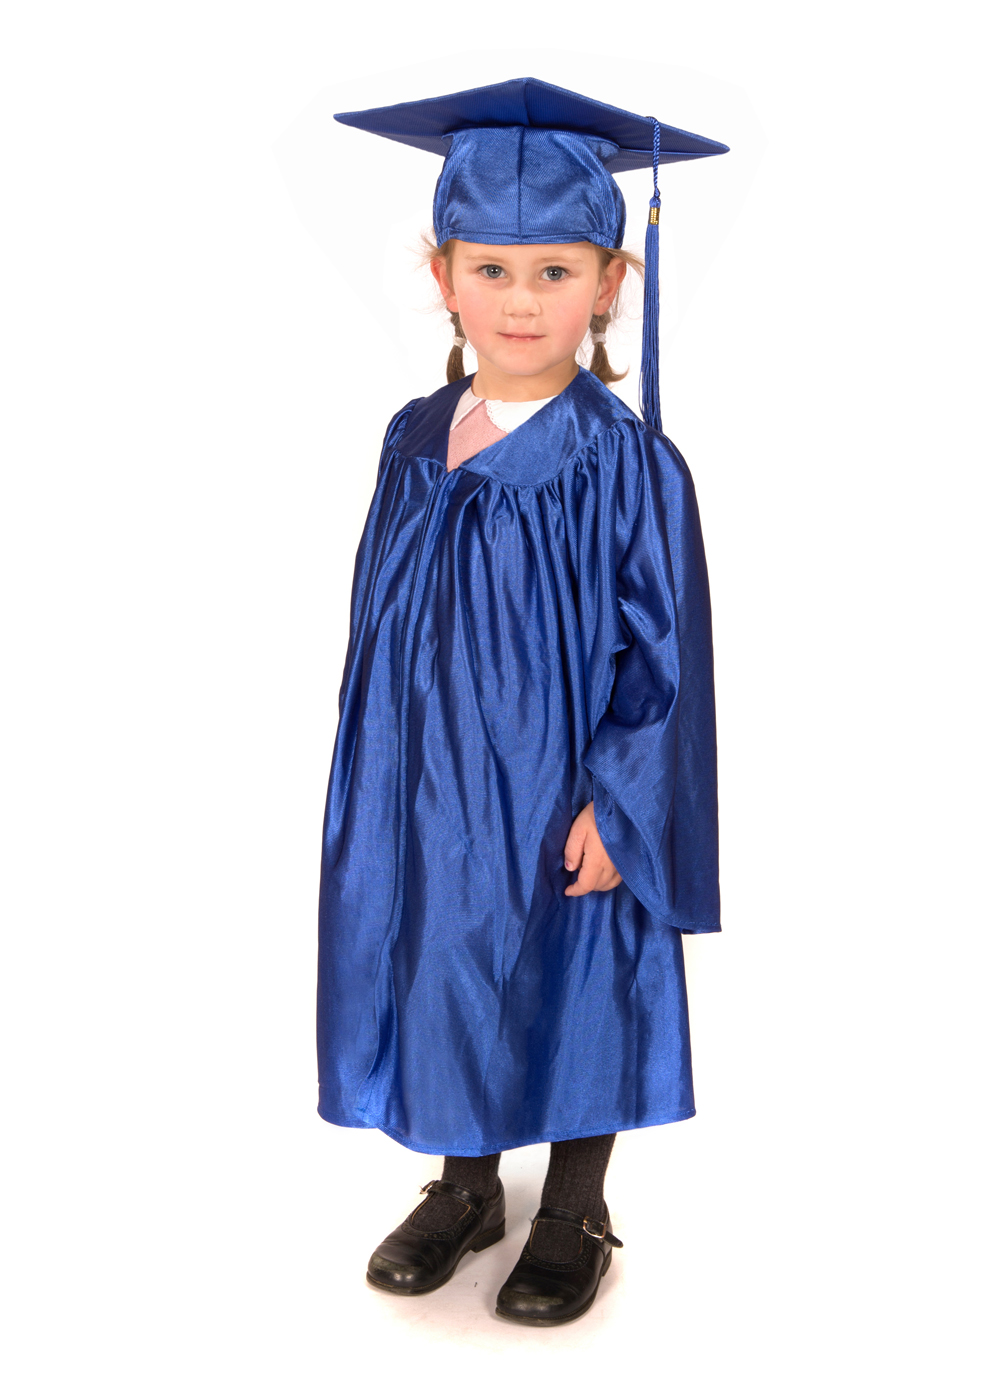 Shiny Nursery Graduation Gown and Cap  sc 1 st  Graduation Gowns in Europe with Graduation Attire EU & Shiny Nursery Graduation Gown and Cap - Graduation Gowns in Europe ...